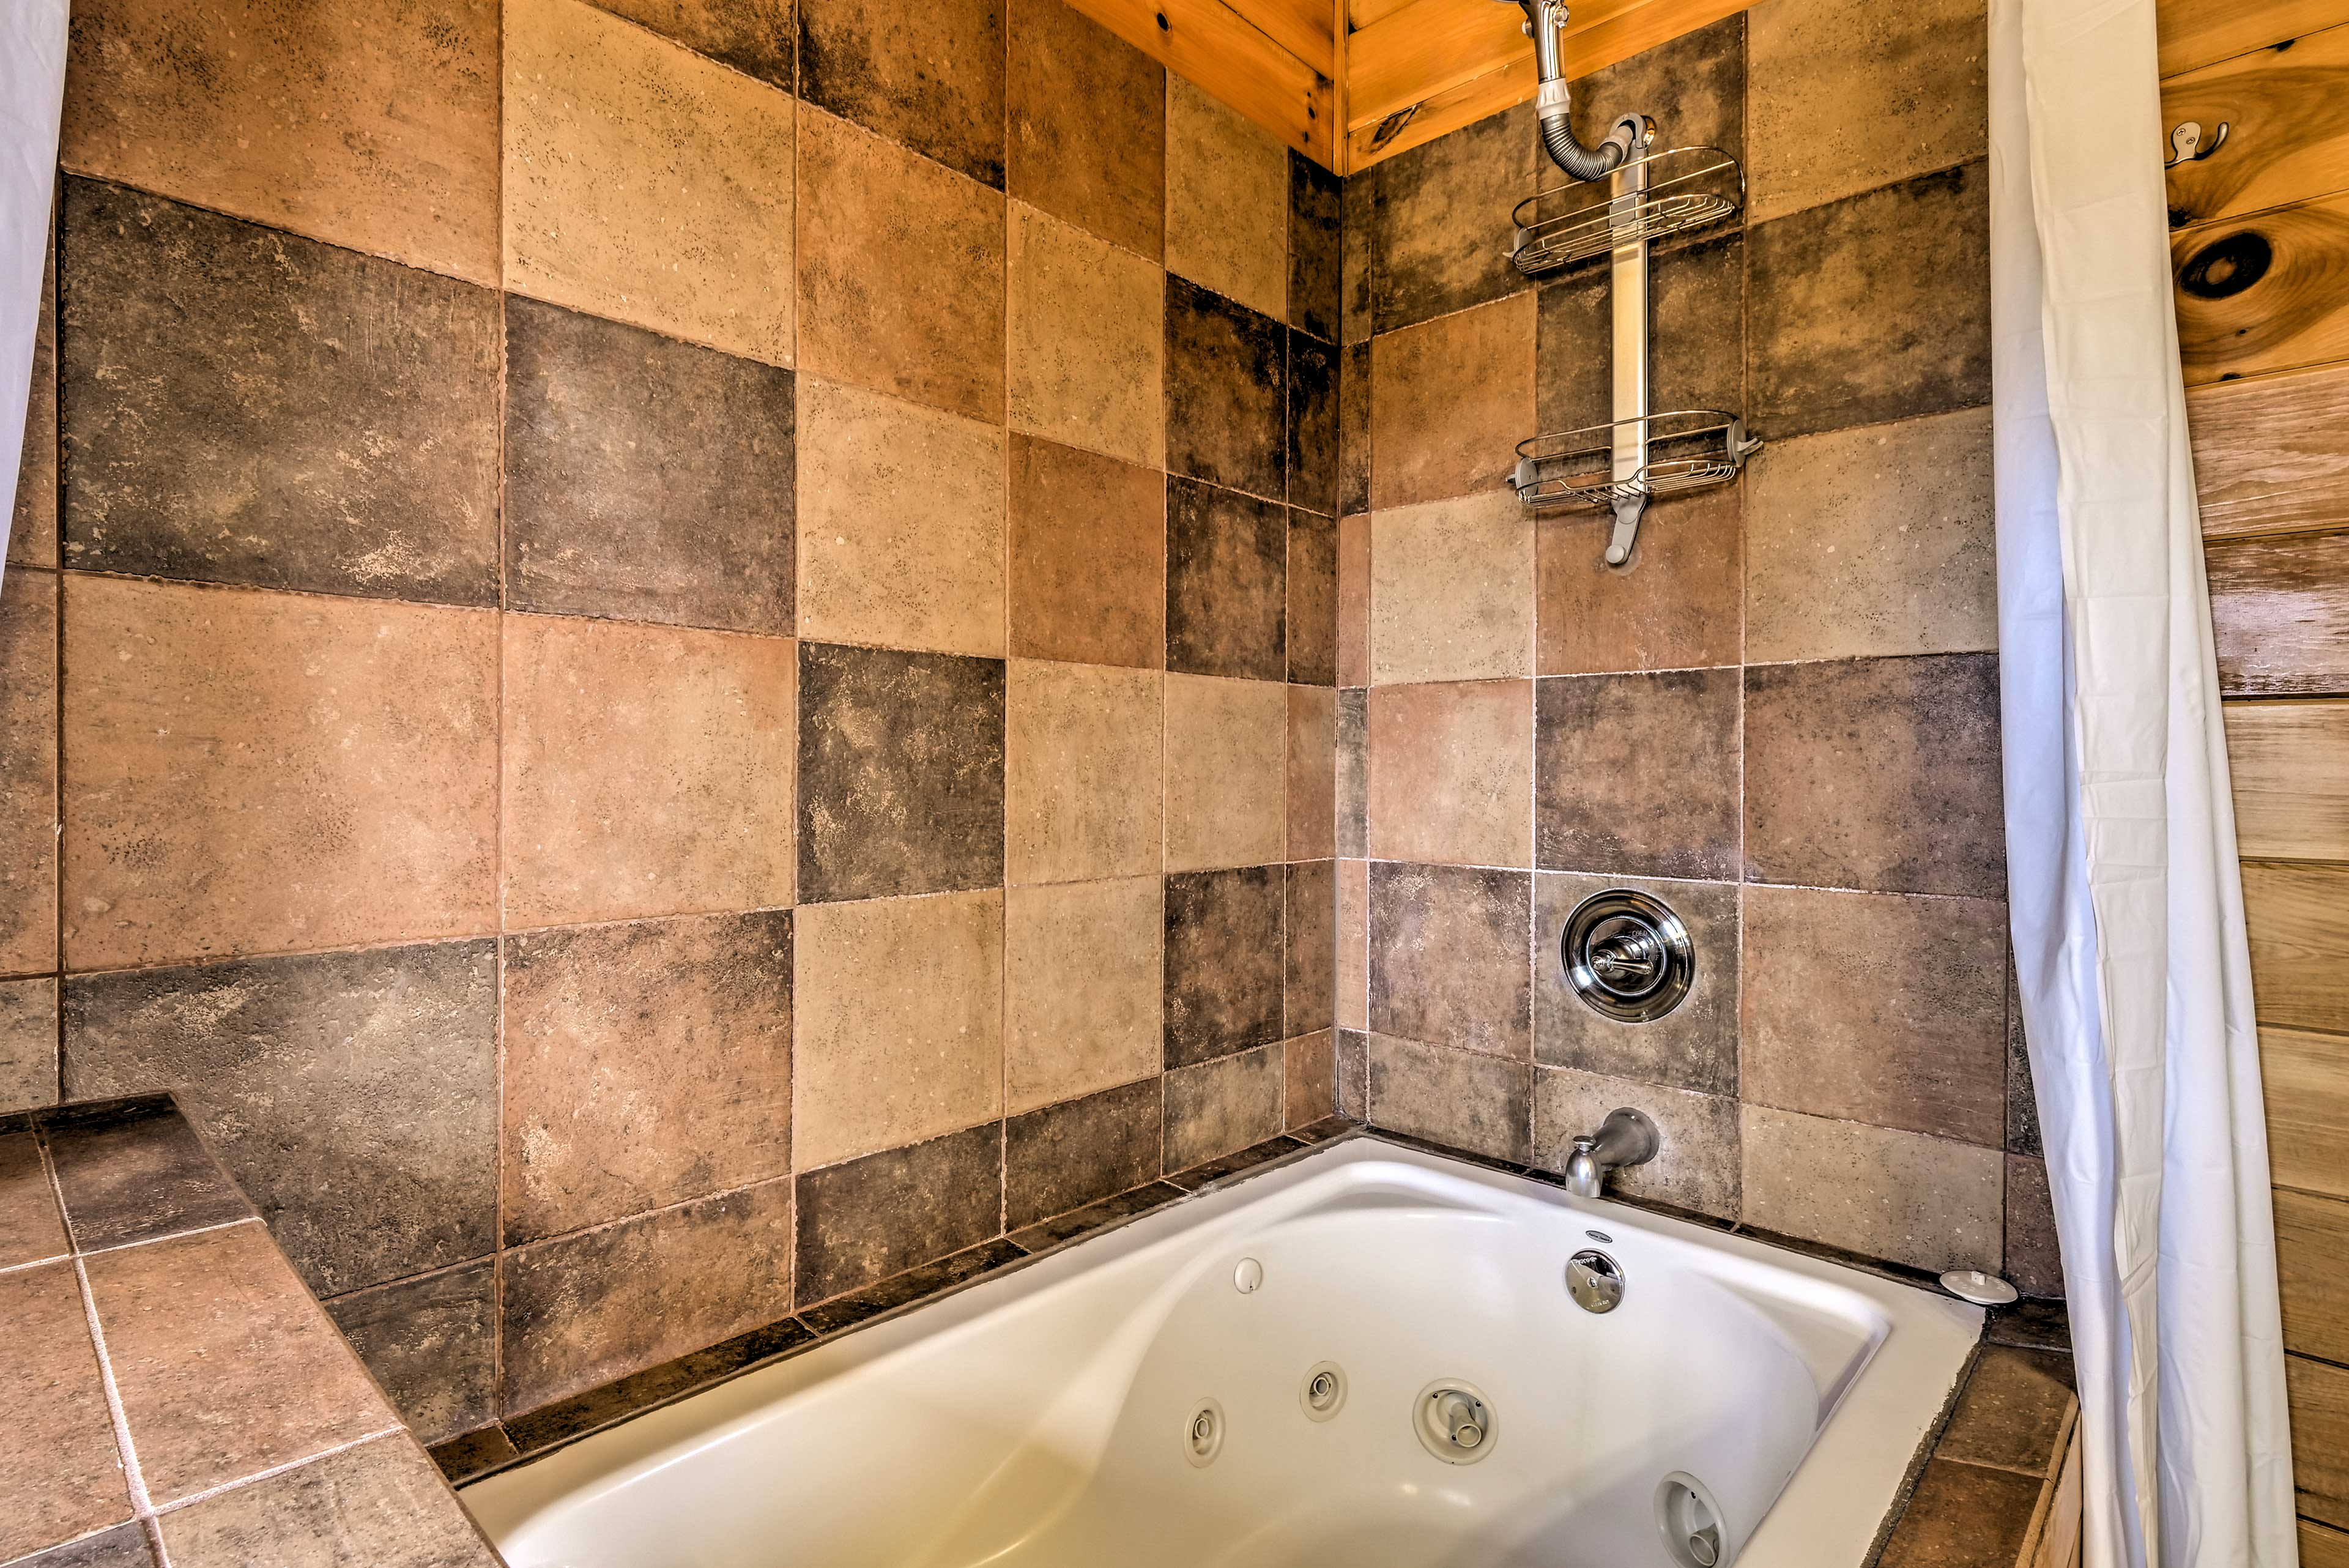 Go for a soak in the luxurious master bathroom.